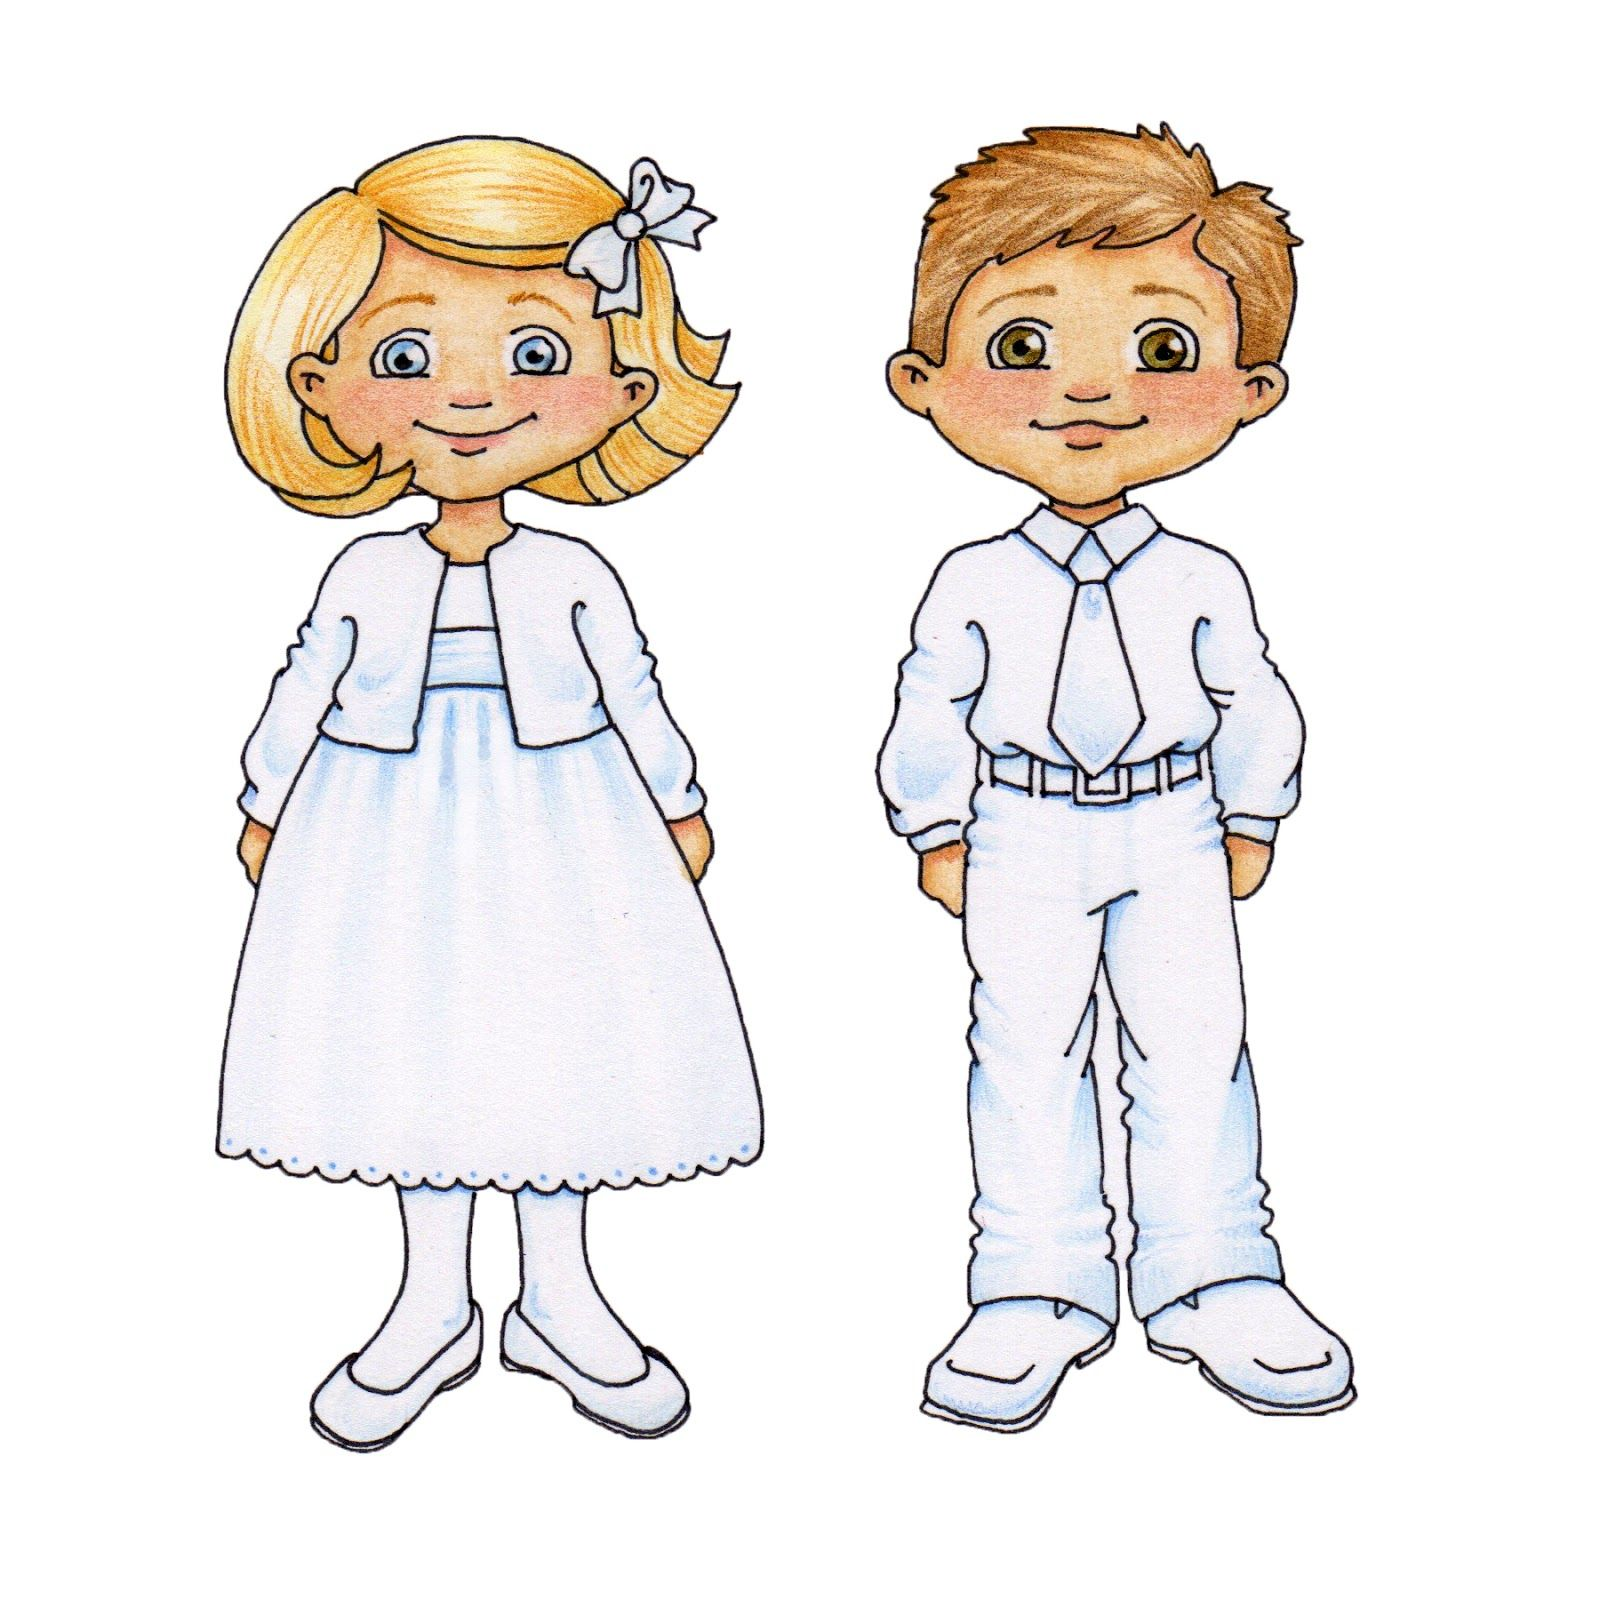 Lds clipart games for primary childrens ctr a children svg royalty free lds clip art | ve been working on some new baptism ... svg royalty free